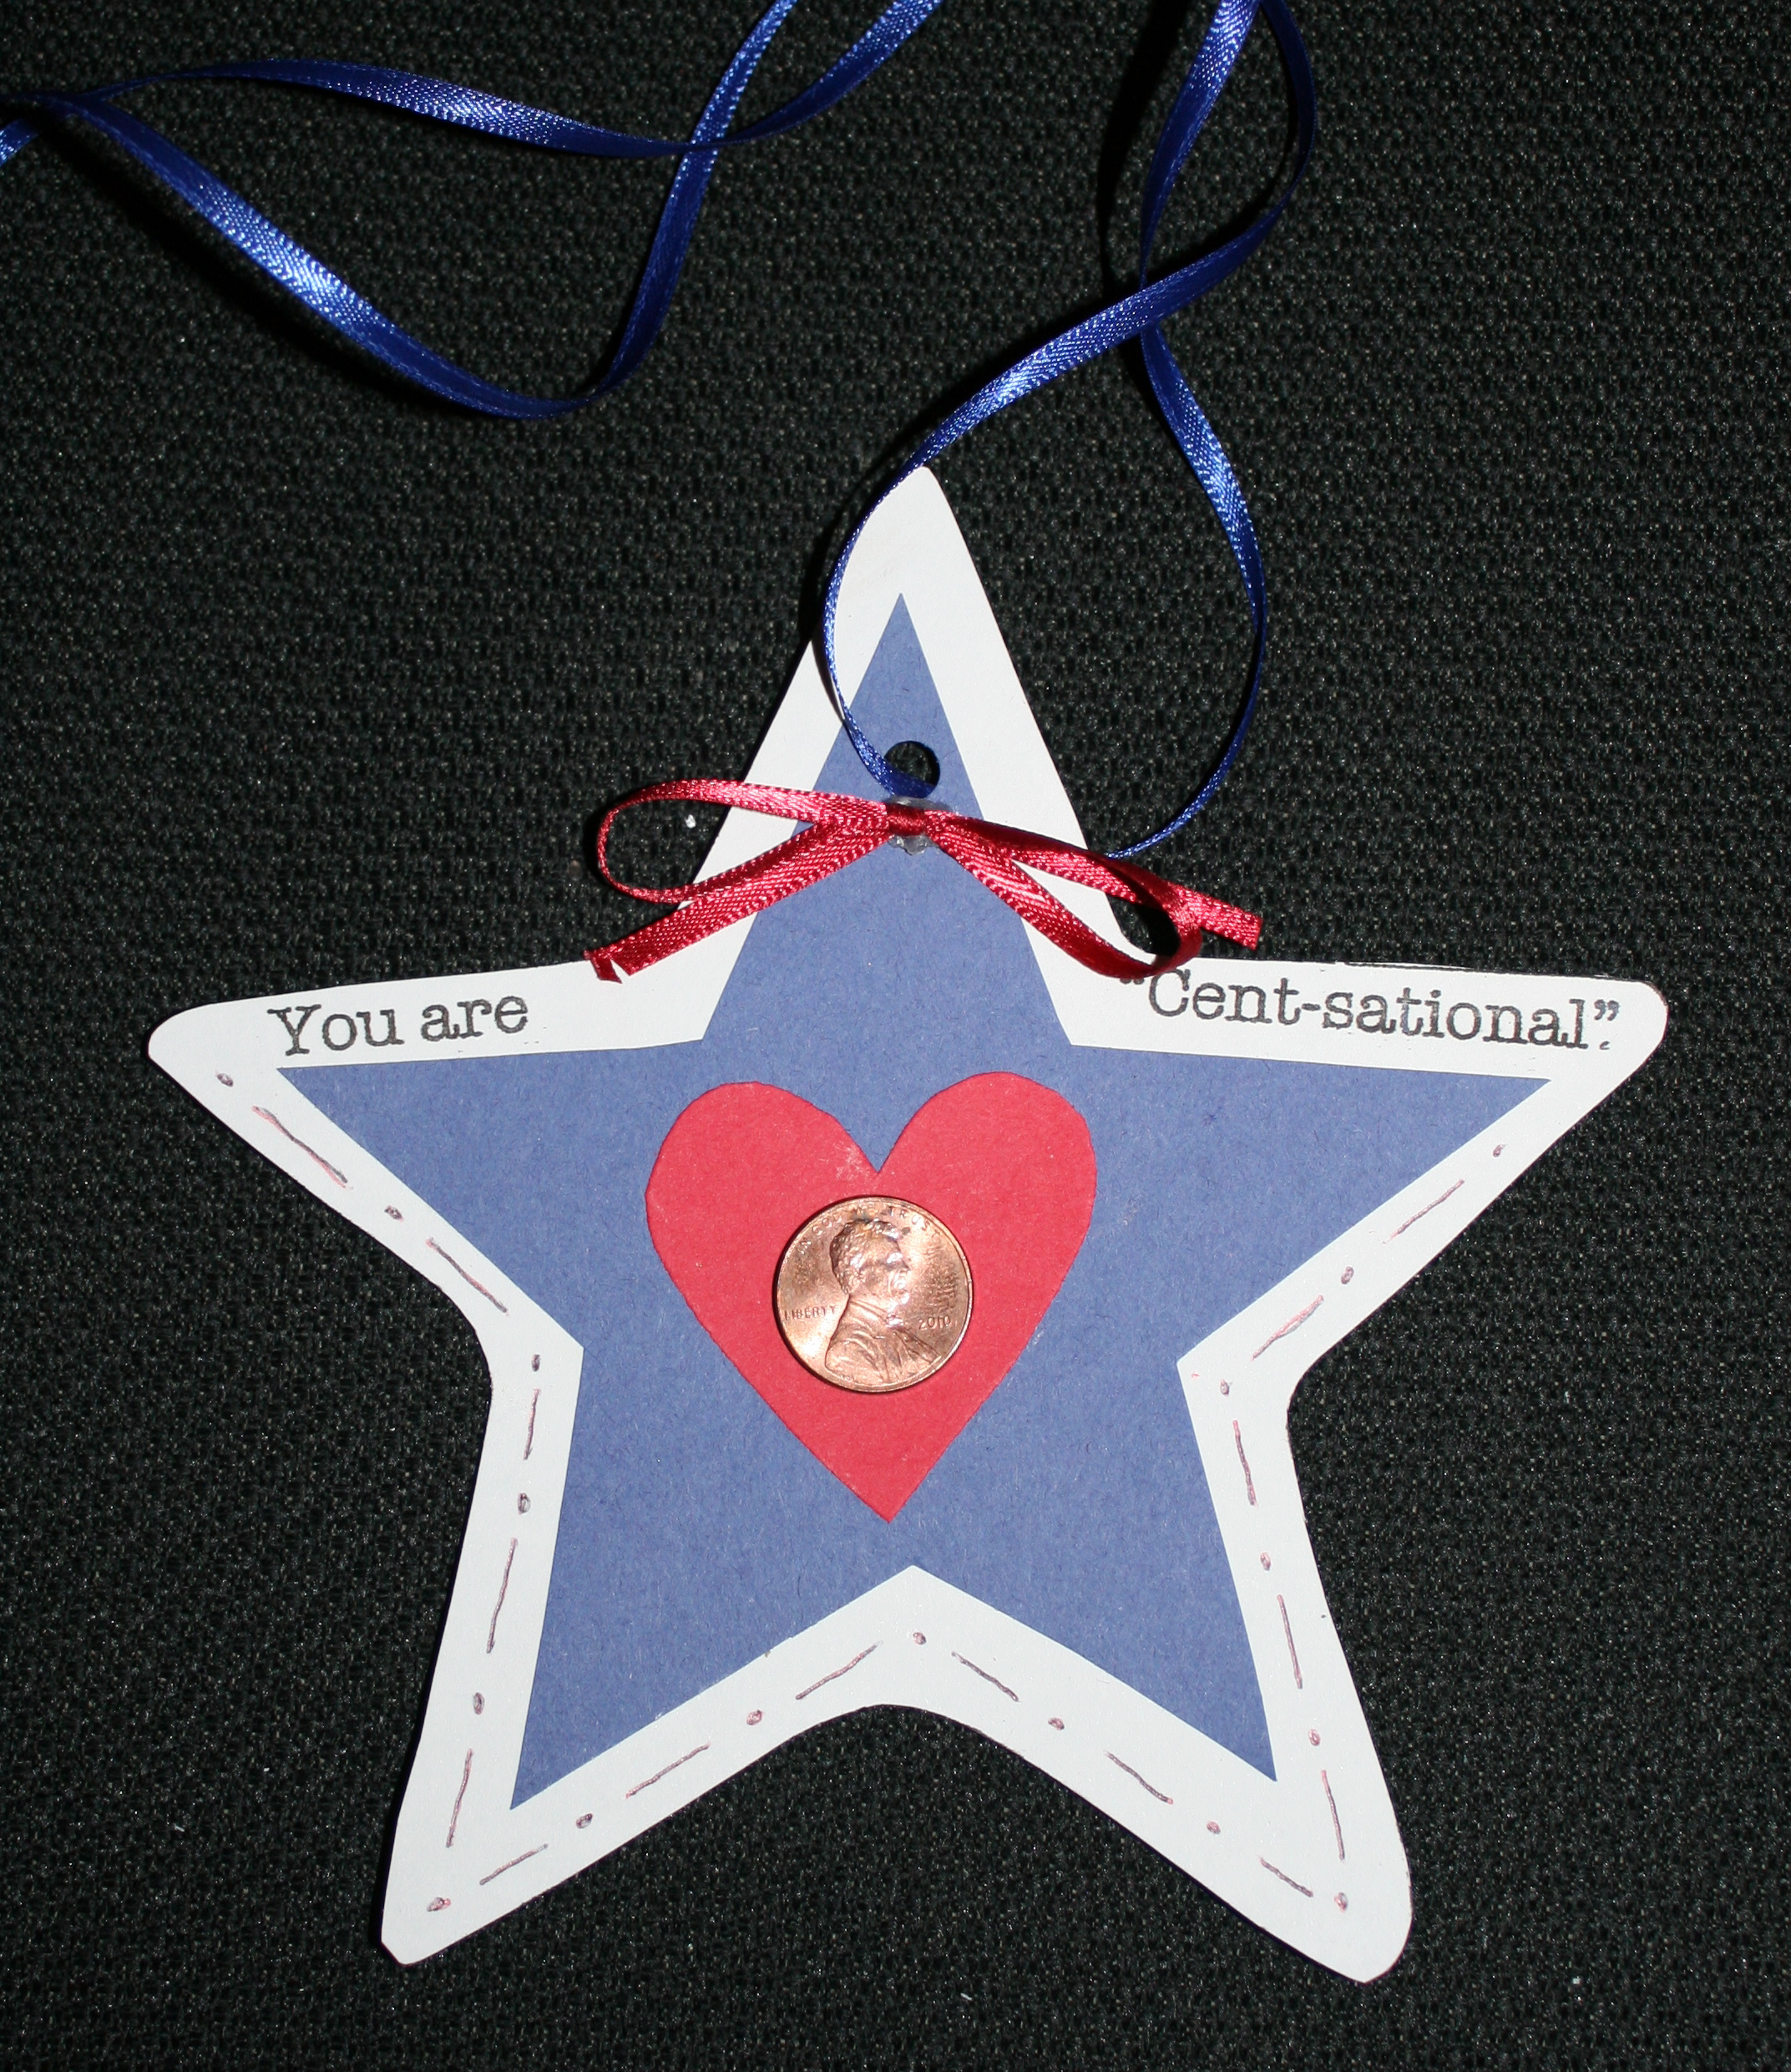 president's day necklace, president's day activities, president's day ideas, lincoln activities, lincoln ideas, penny activities, penny ideas, penny centers, penny necklace, money centers, money ideas, money activities, money lessons, coin lessons, penny lessons,